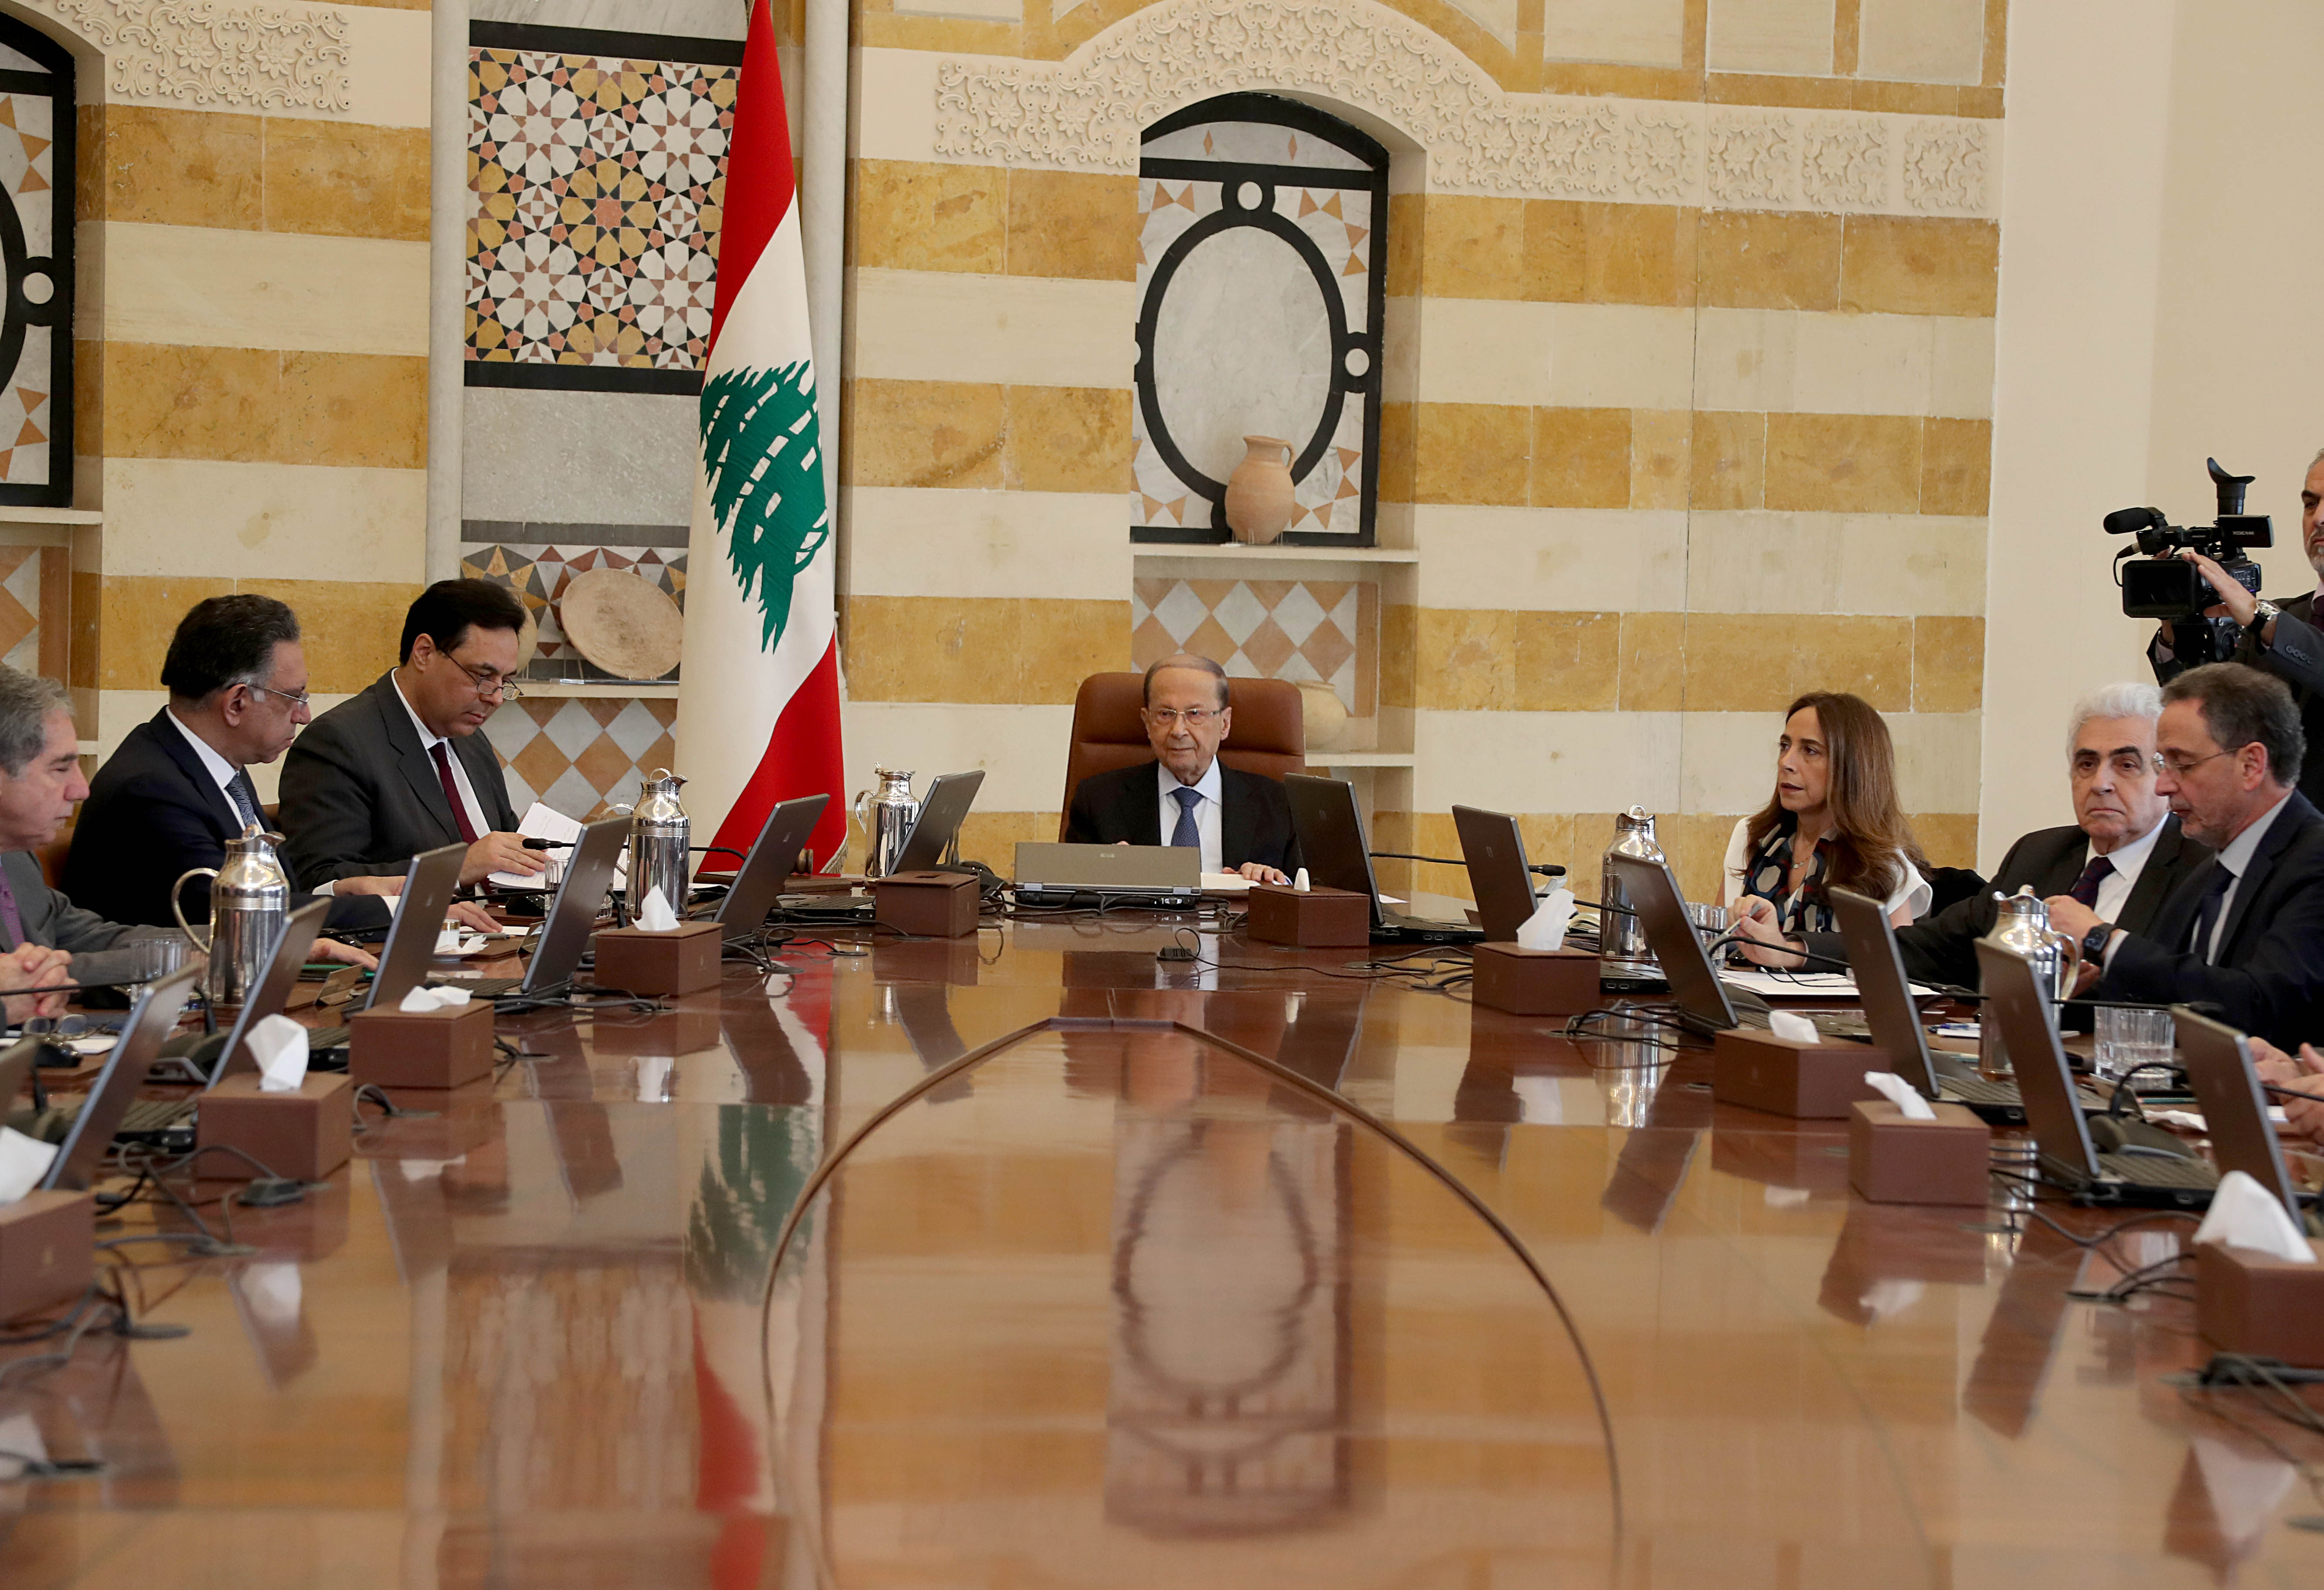 3 - Ministerial Council. 1